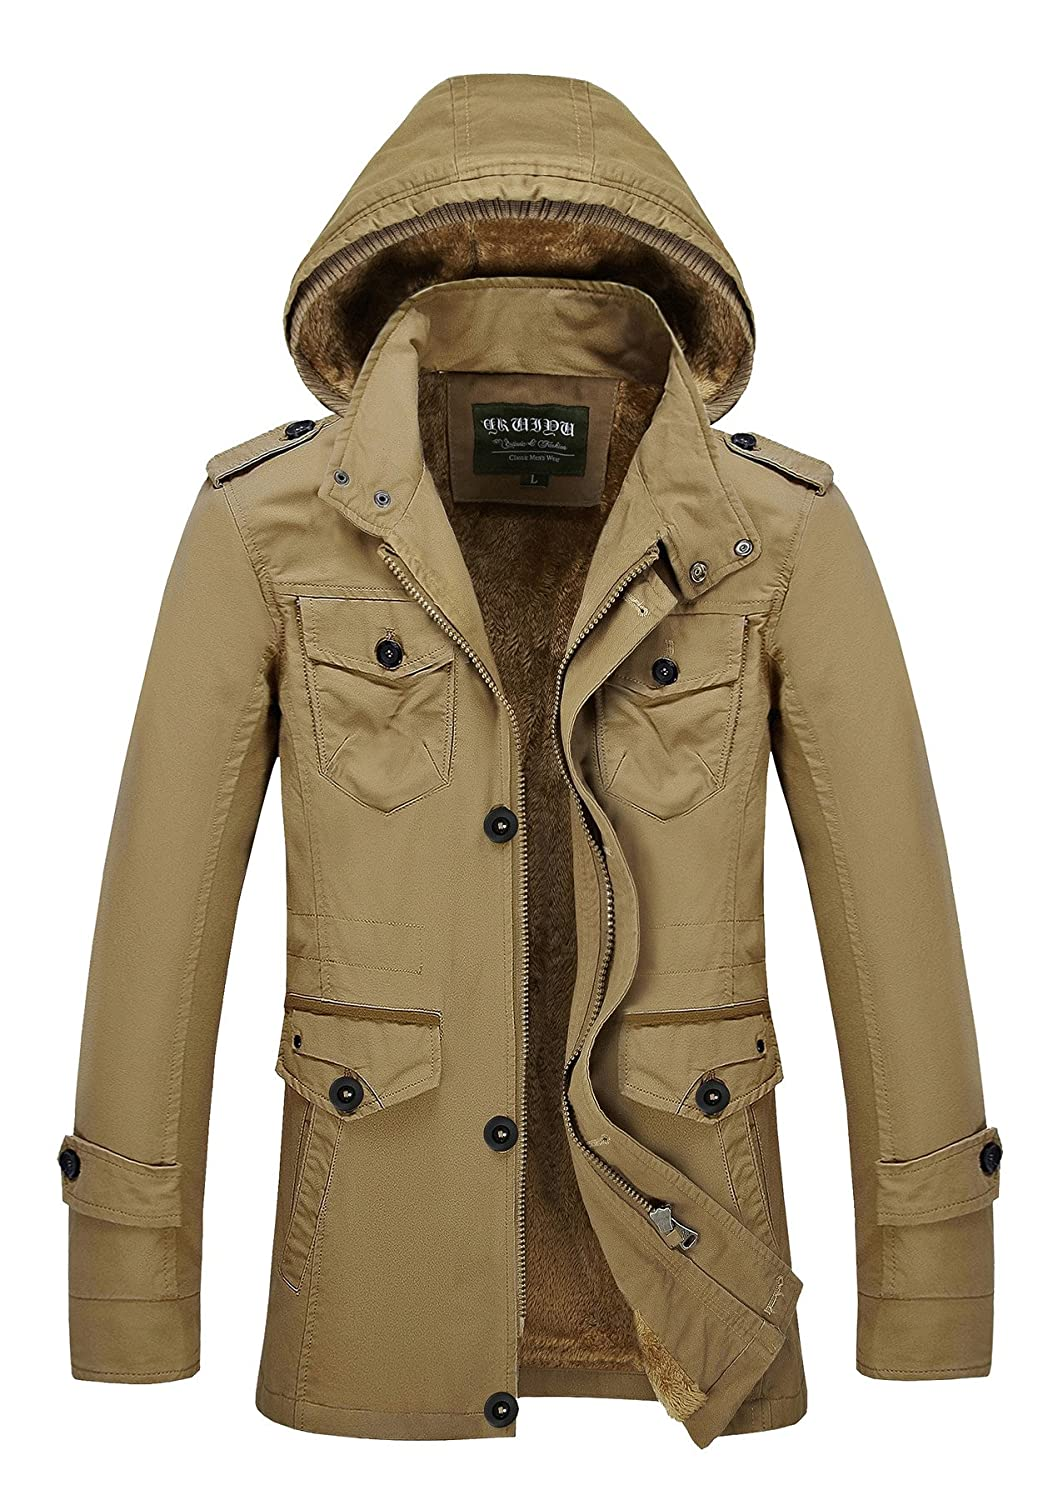 Cresay Men's Long Hooded Thick Trench Coat Winter Outwear Jackets Padded Jacket